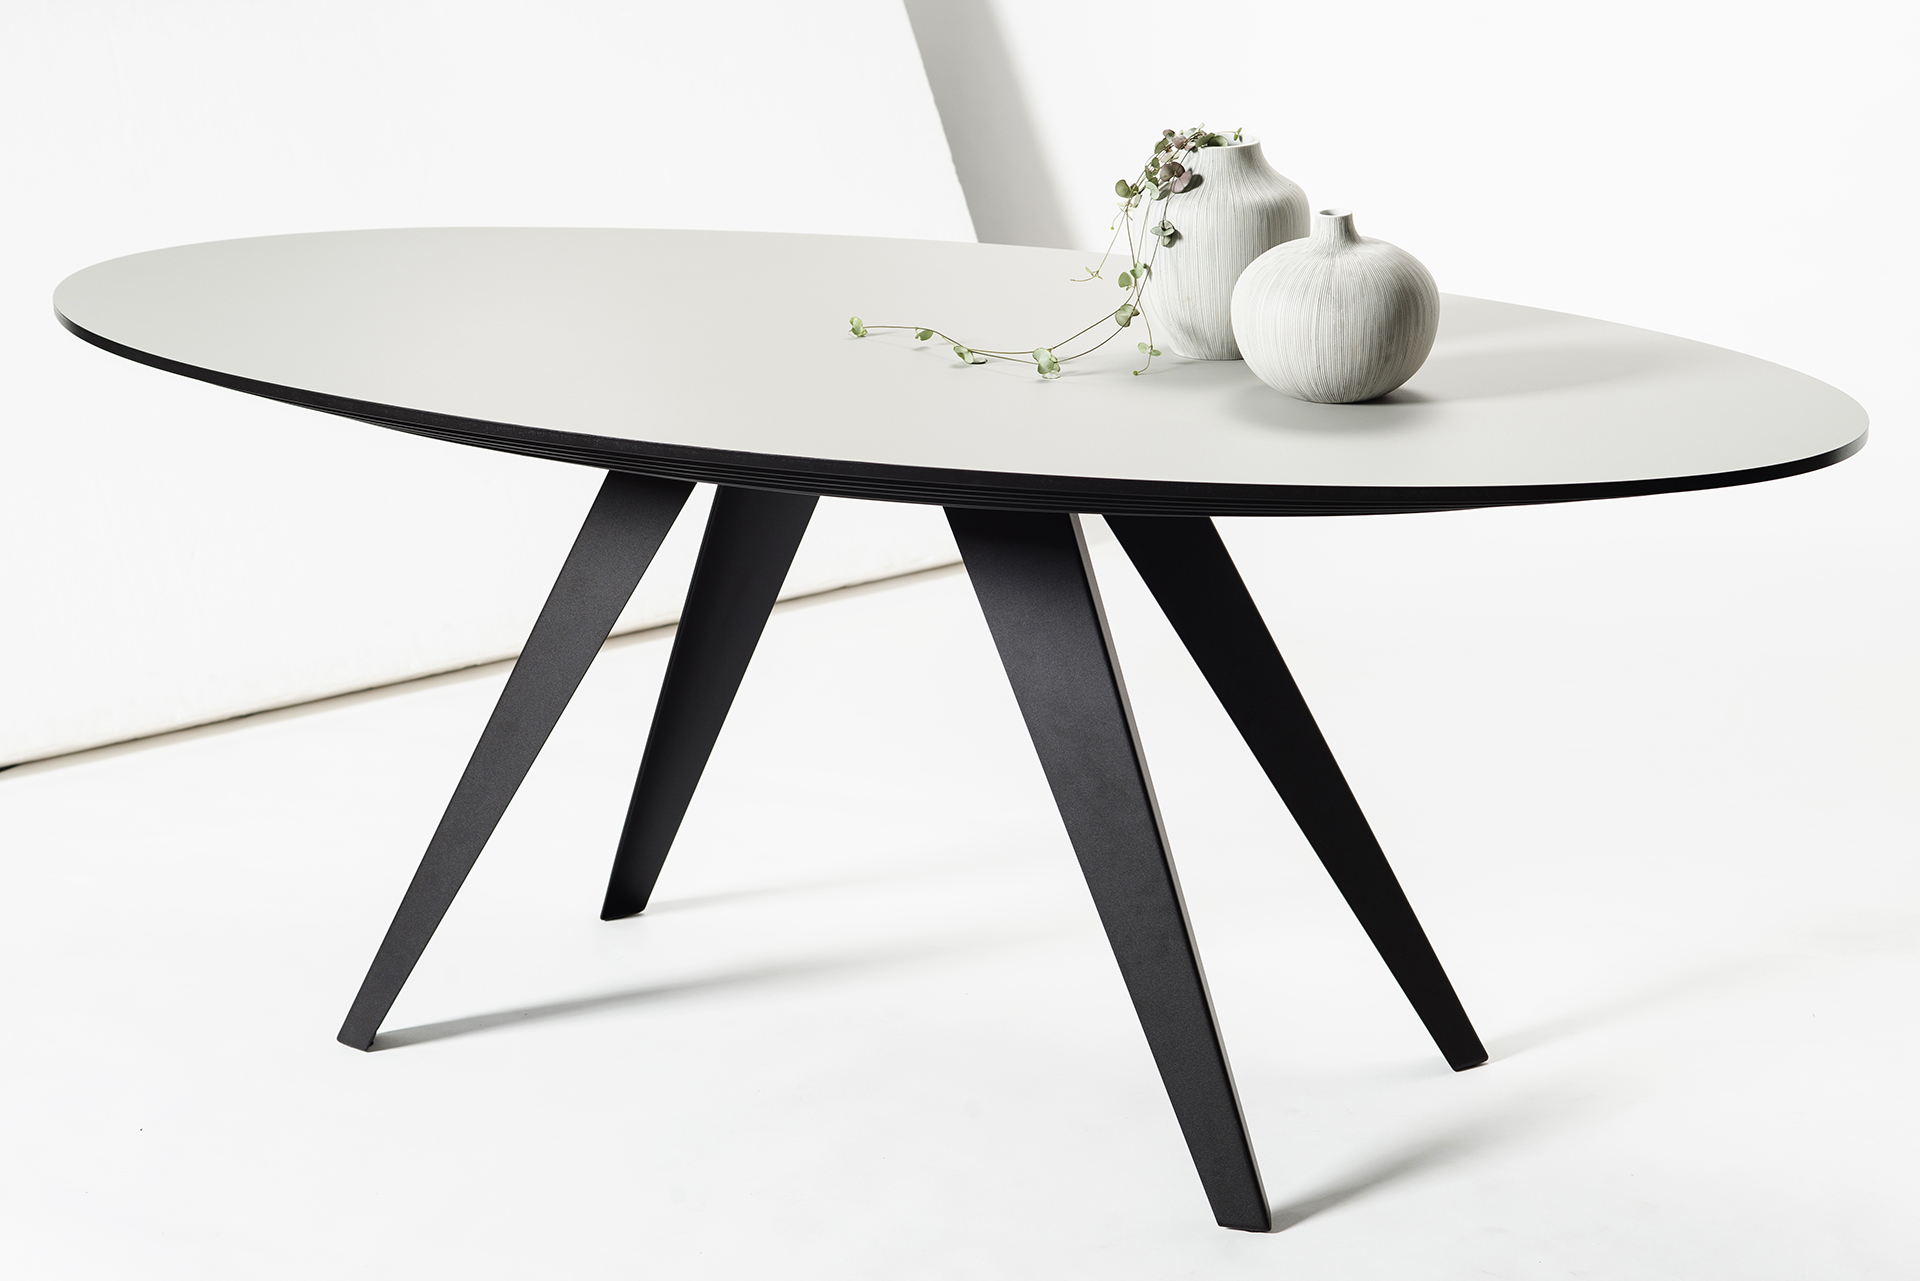 Tafel Ovaal Design : Ovalen design esstisch belly l kees marcelis l odesi. your dutch design.